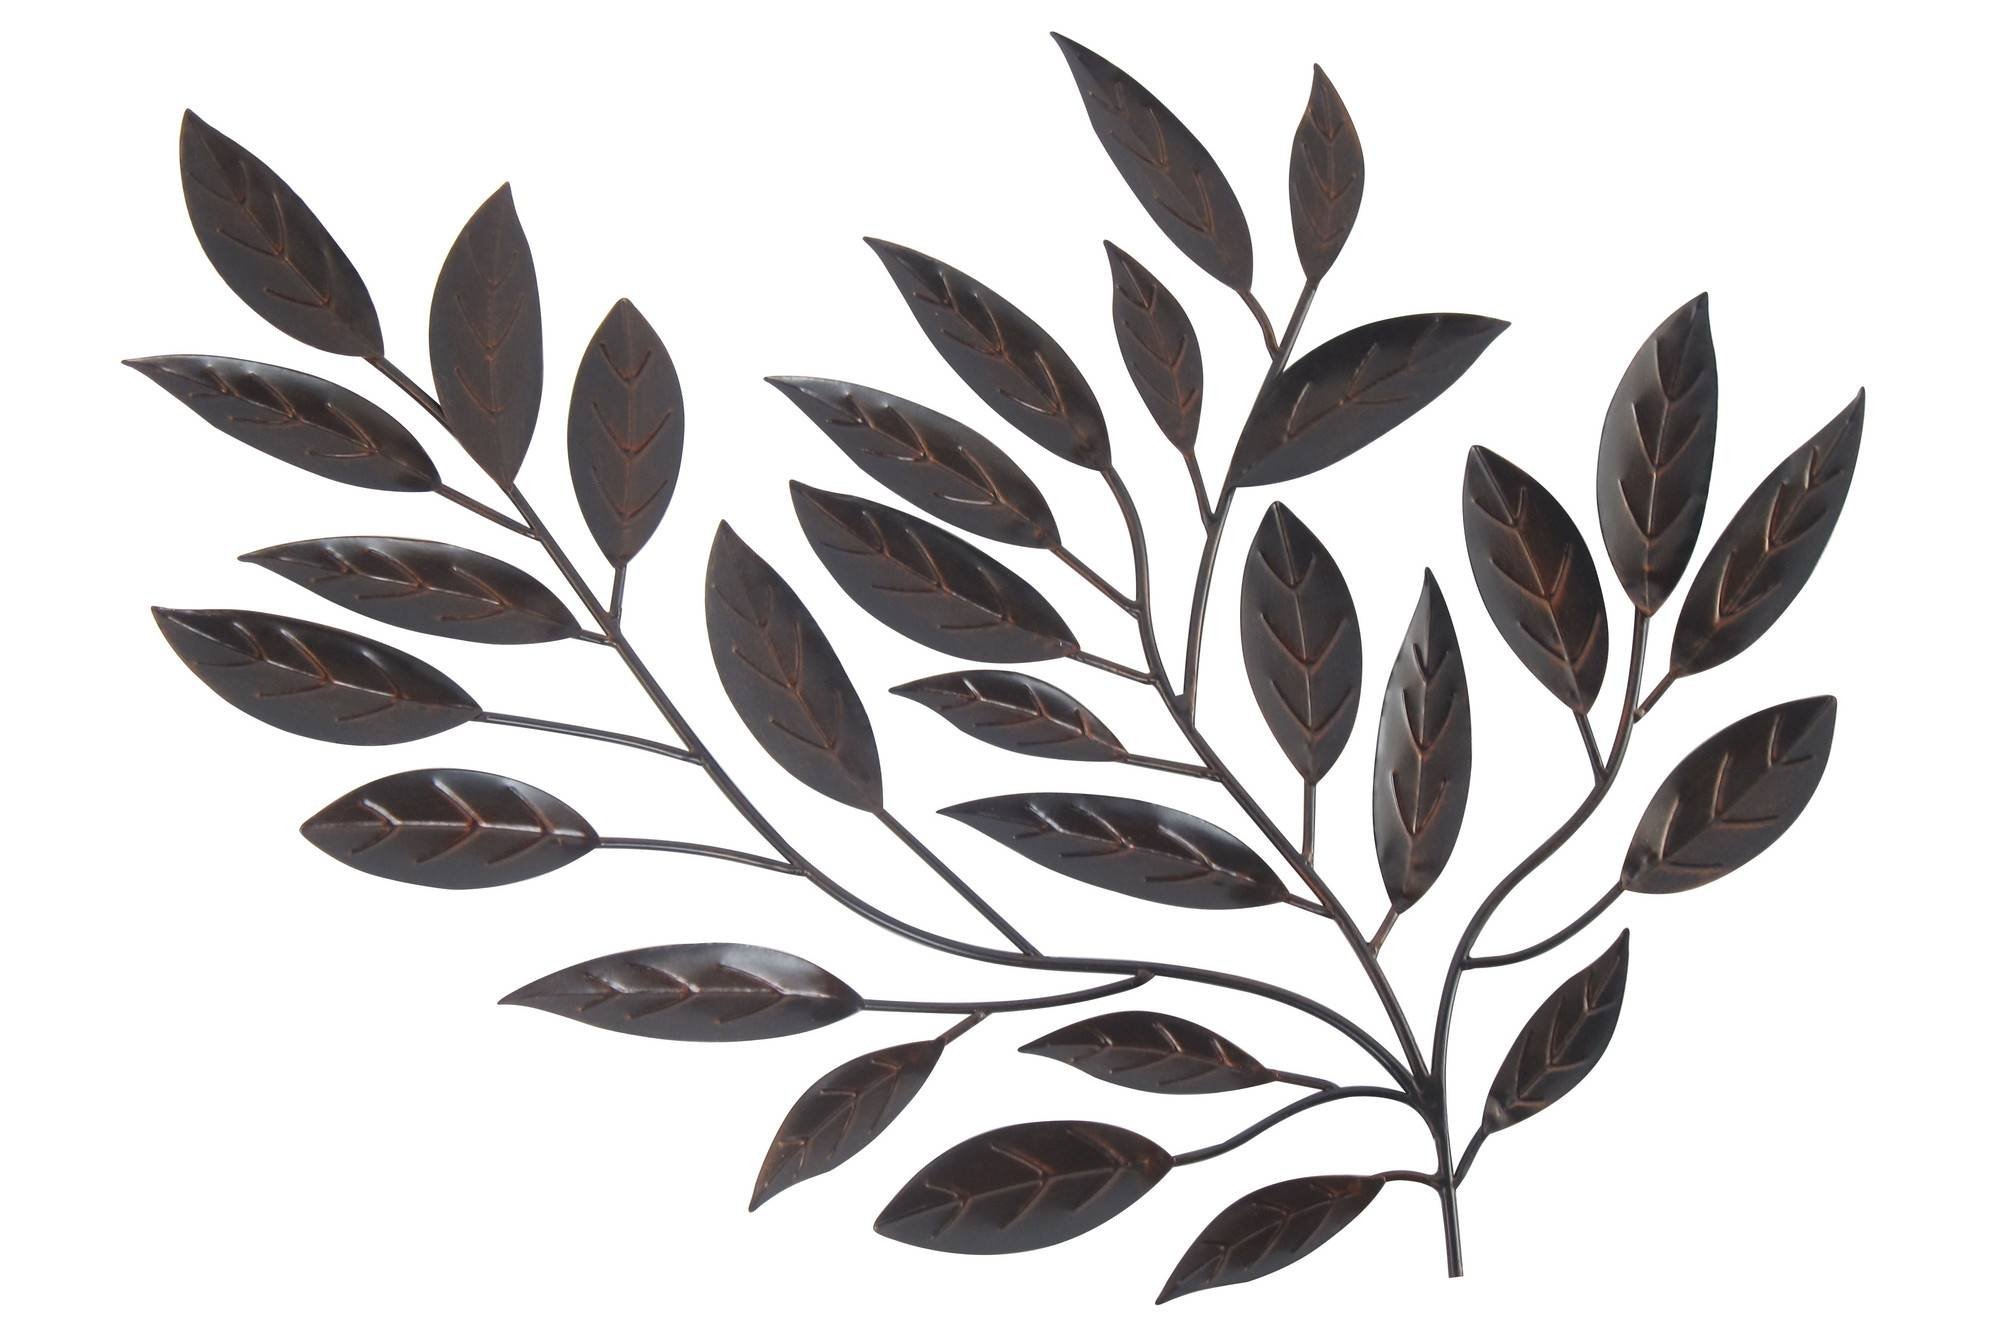 Forged Metal Leaves – Floral Metal Wall Art With 2018 Metal Wall Art Leaves (View 8 of 20)